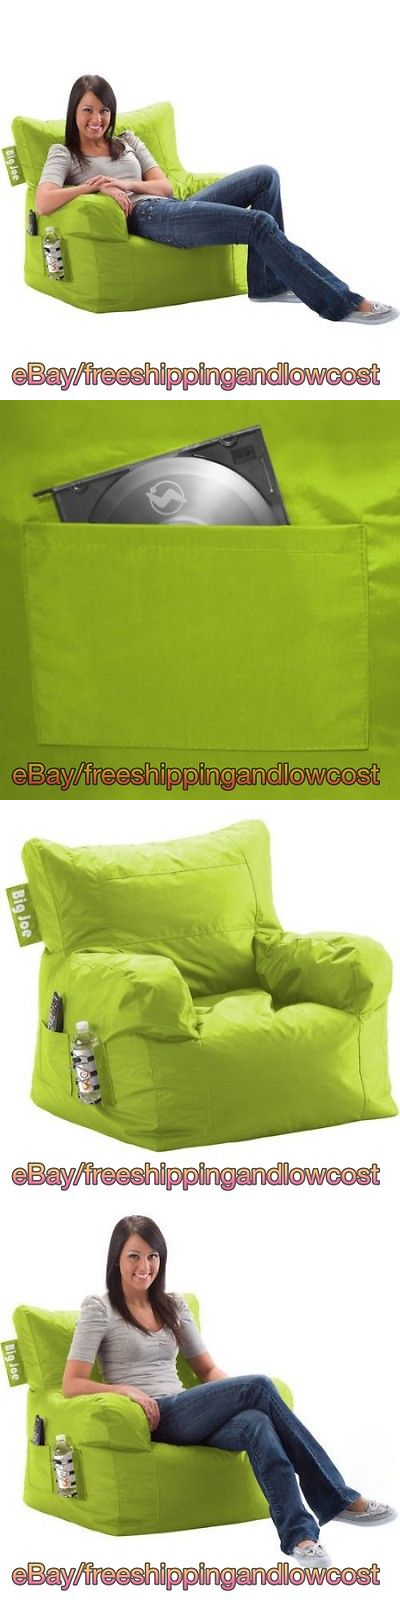 Bean Bags And Inflatables 108428 Bag Chair Waterproof Lime Color Sain Resistant Drink